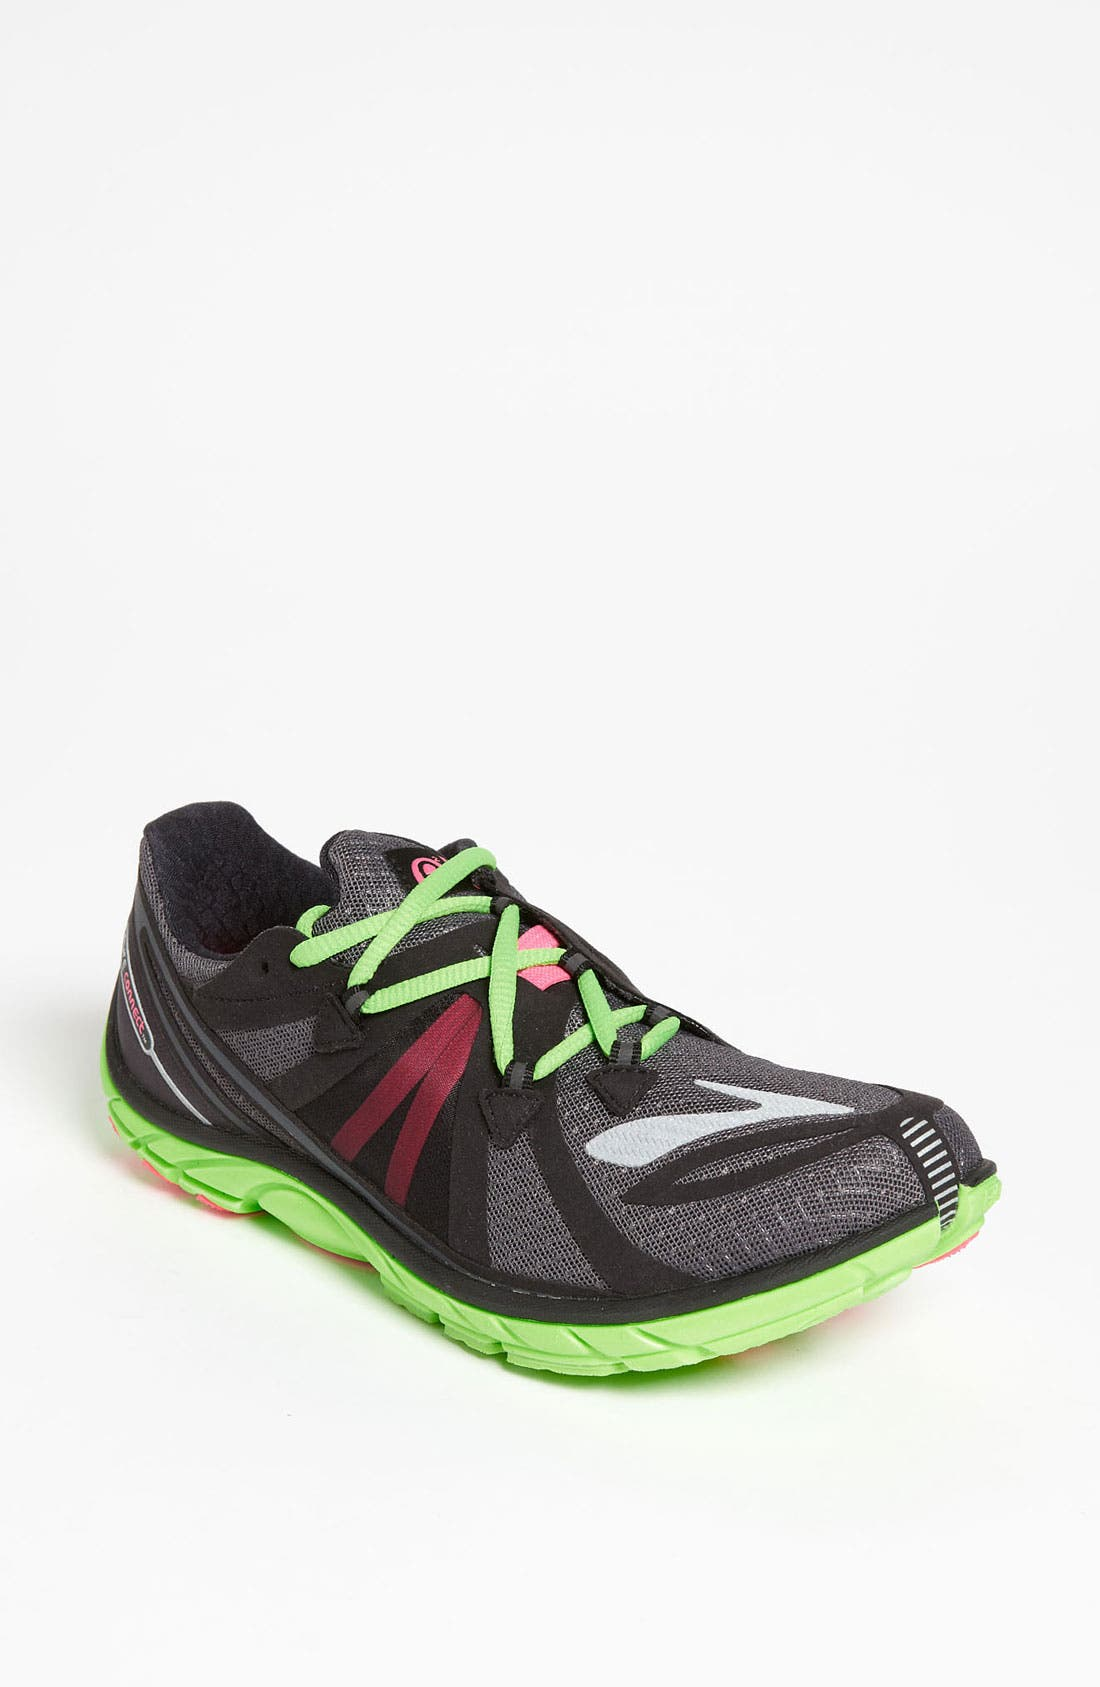 Main Image - Brooks 'PureConnect 2' Running Shoe (Women)(Regular Retail Price: $89.95)